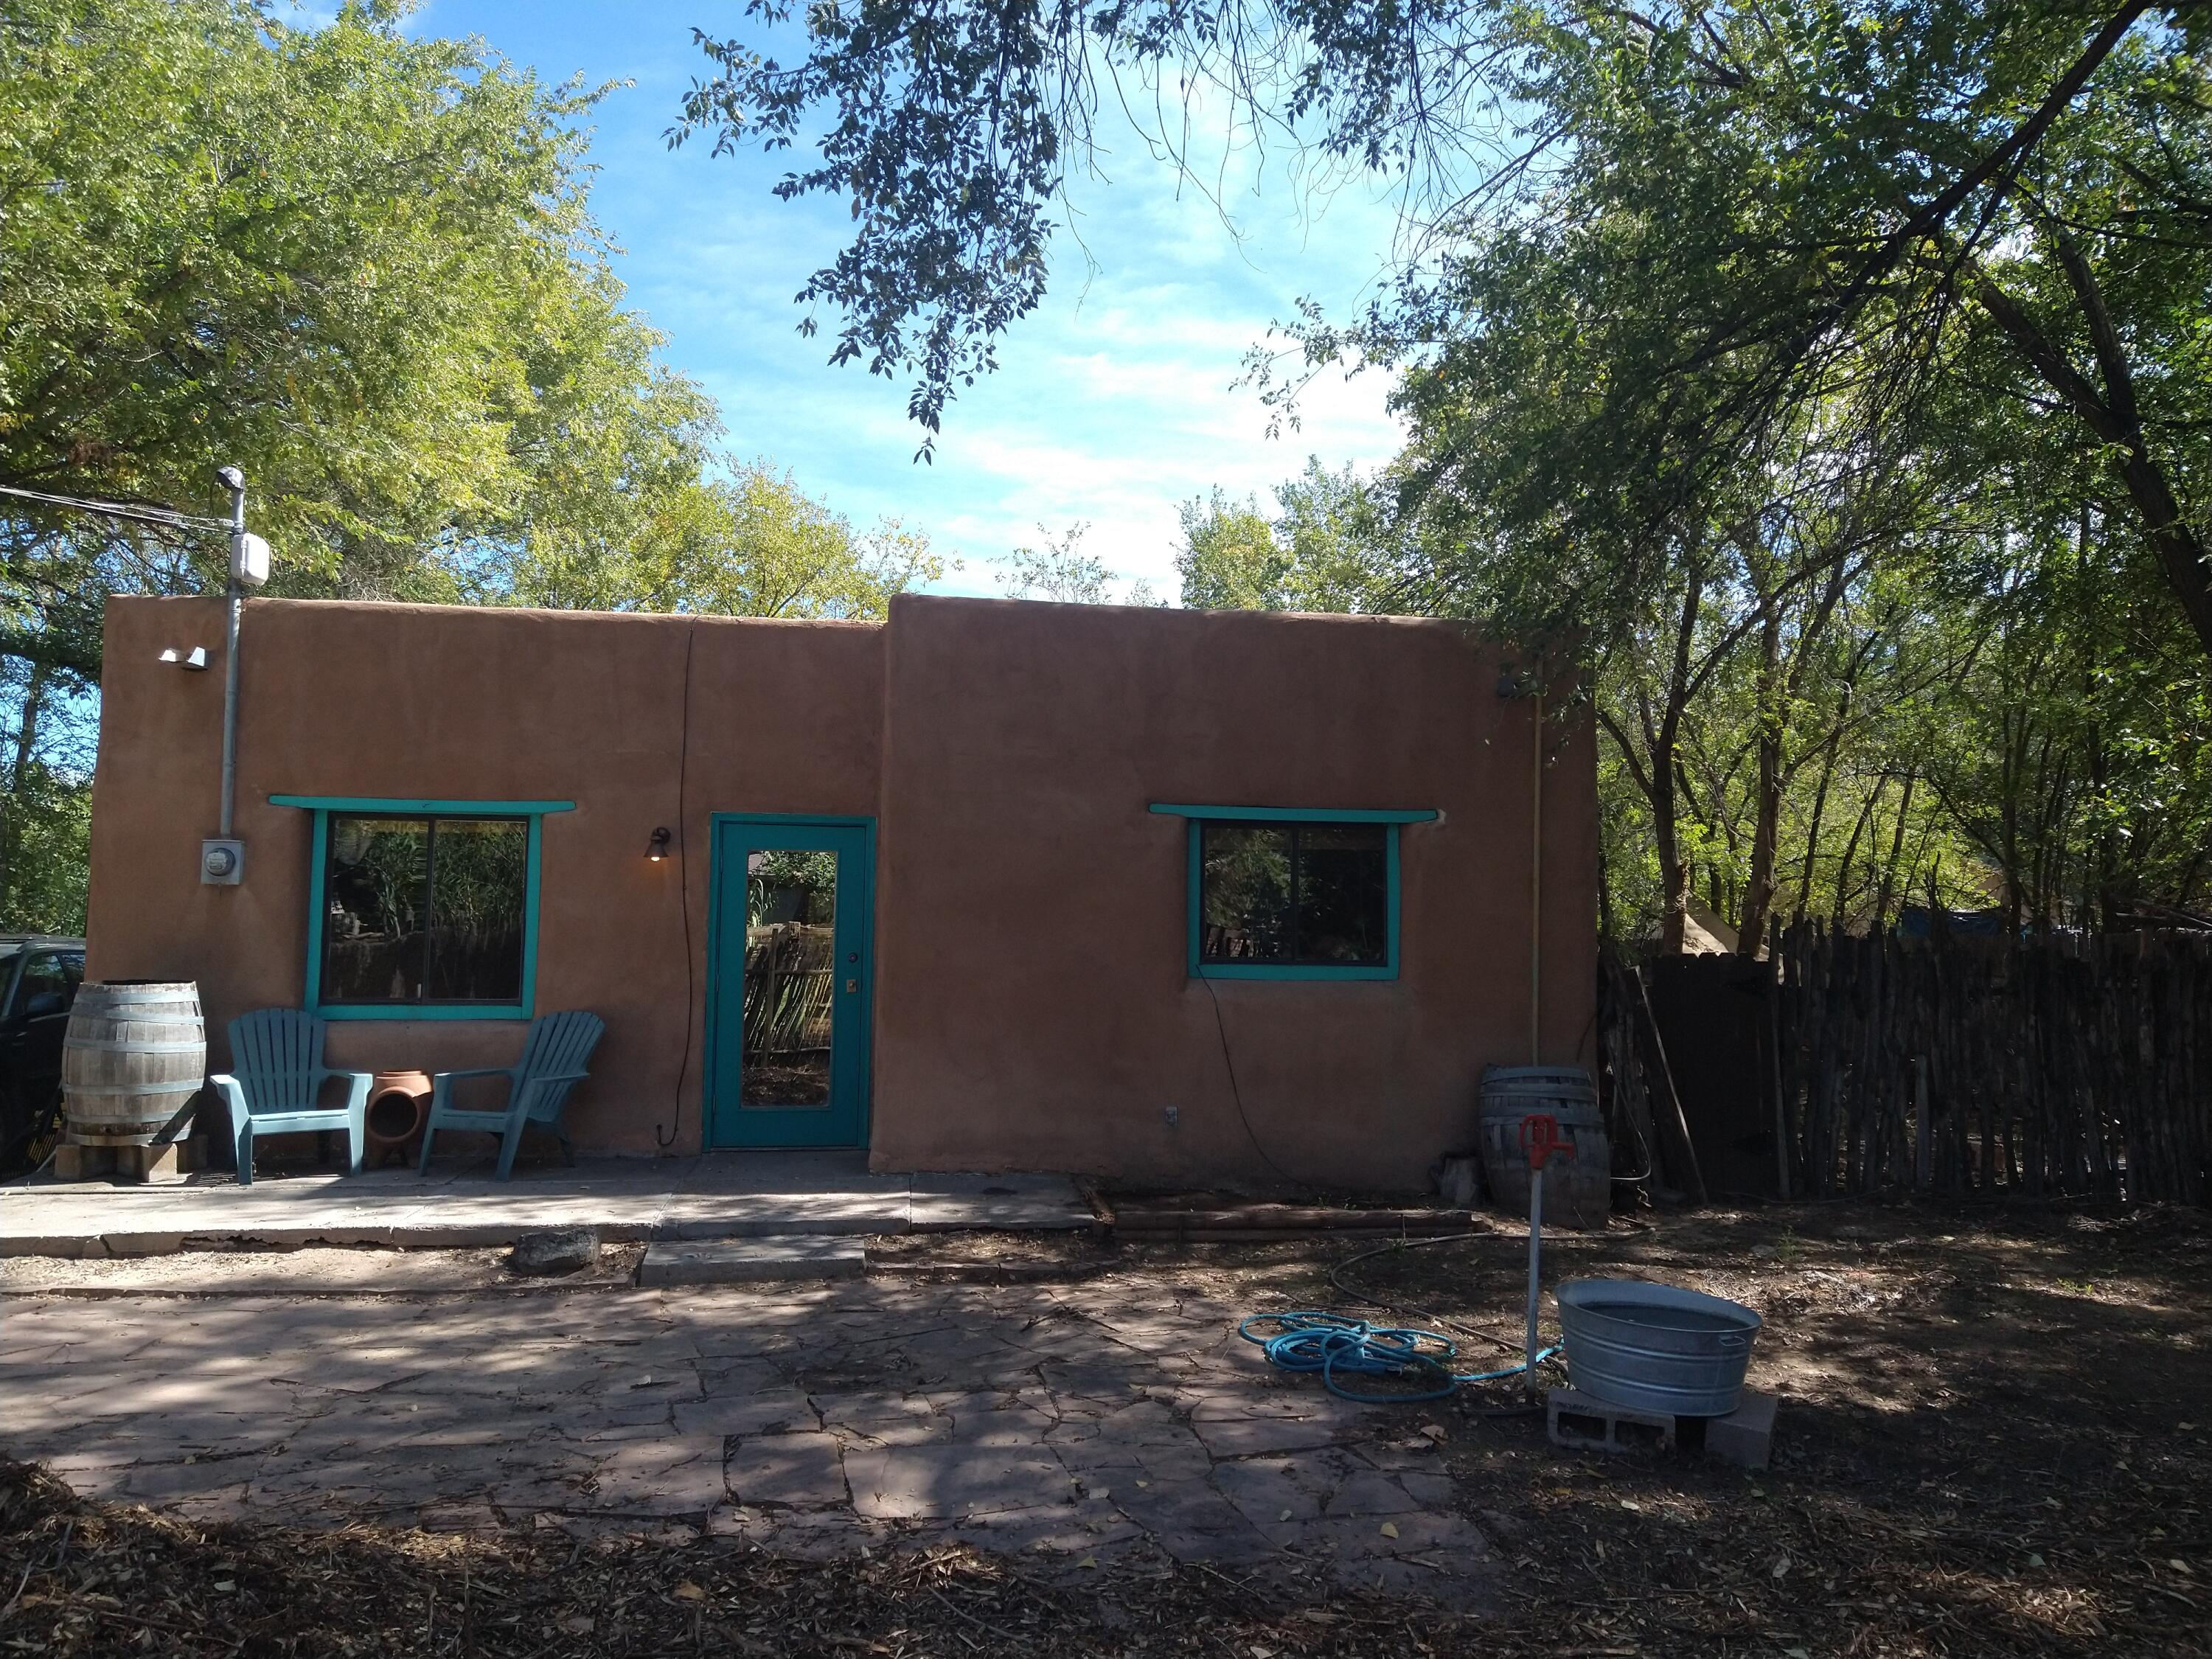 This home sold premarket. Placed in MLS for comparable purposes only. A charming, quintessential New Mexico home. Adobe construction sitting on a spacious lot with coyote fencing. With a deck built outback for your own personal yoga studio in the sunshine. This one is special.